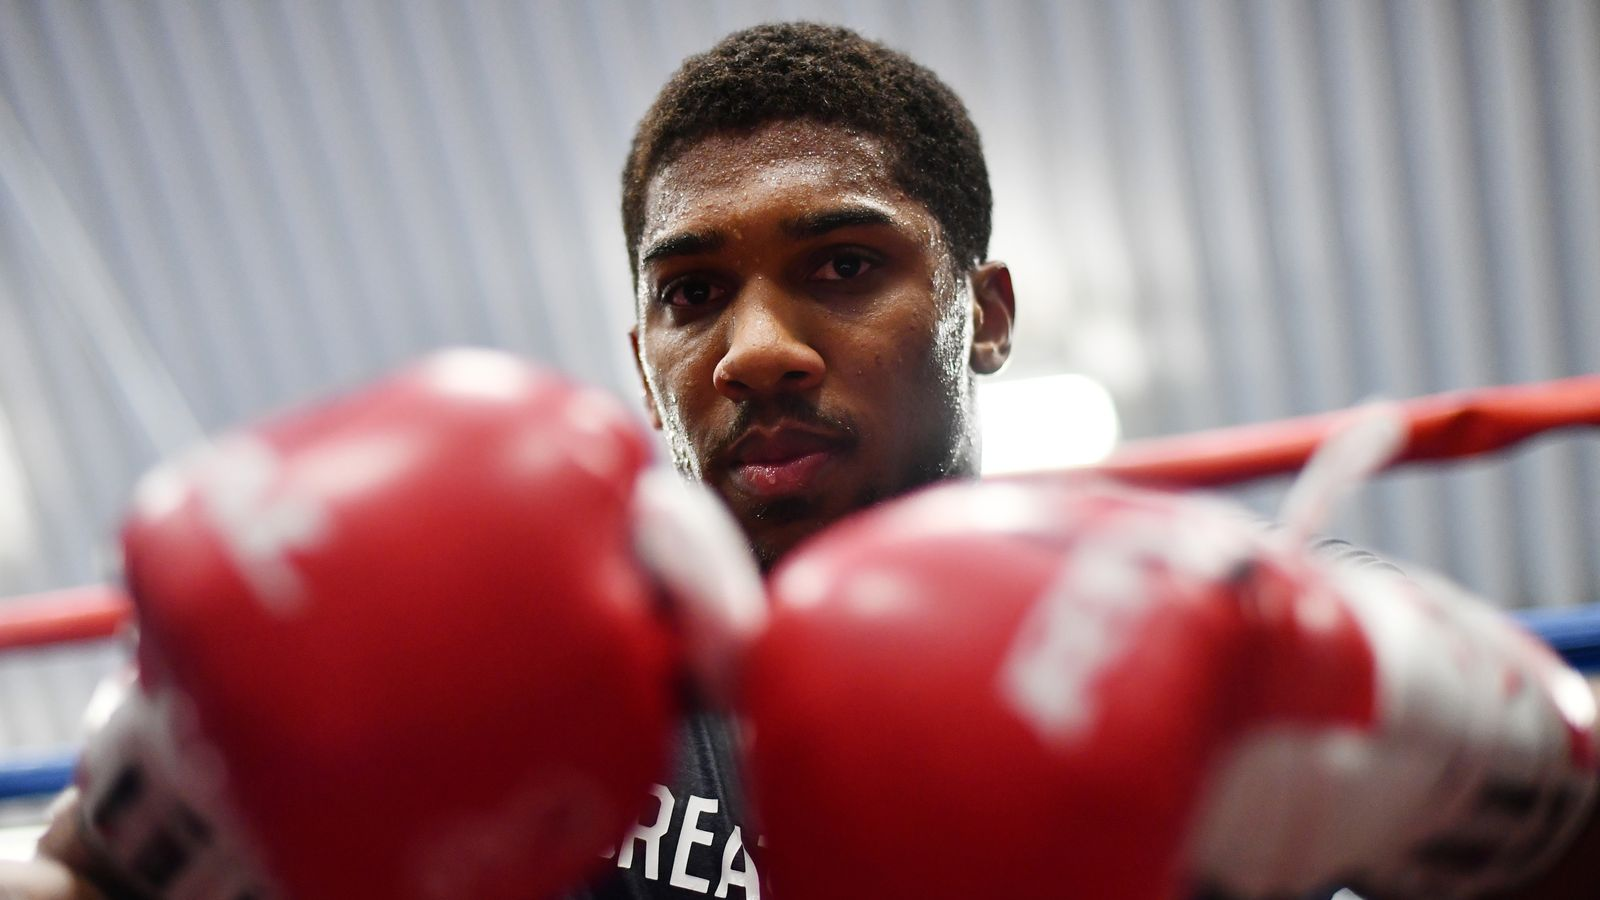 SHEFFIELD, ENGLAND - APRIL 19:  Anthony Joshua looks on during the media workout at EIS Sheffield on April 19, 2017 in Sheffield, England.  (Photo by Dan M